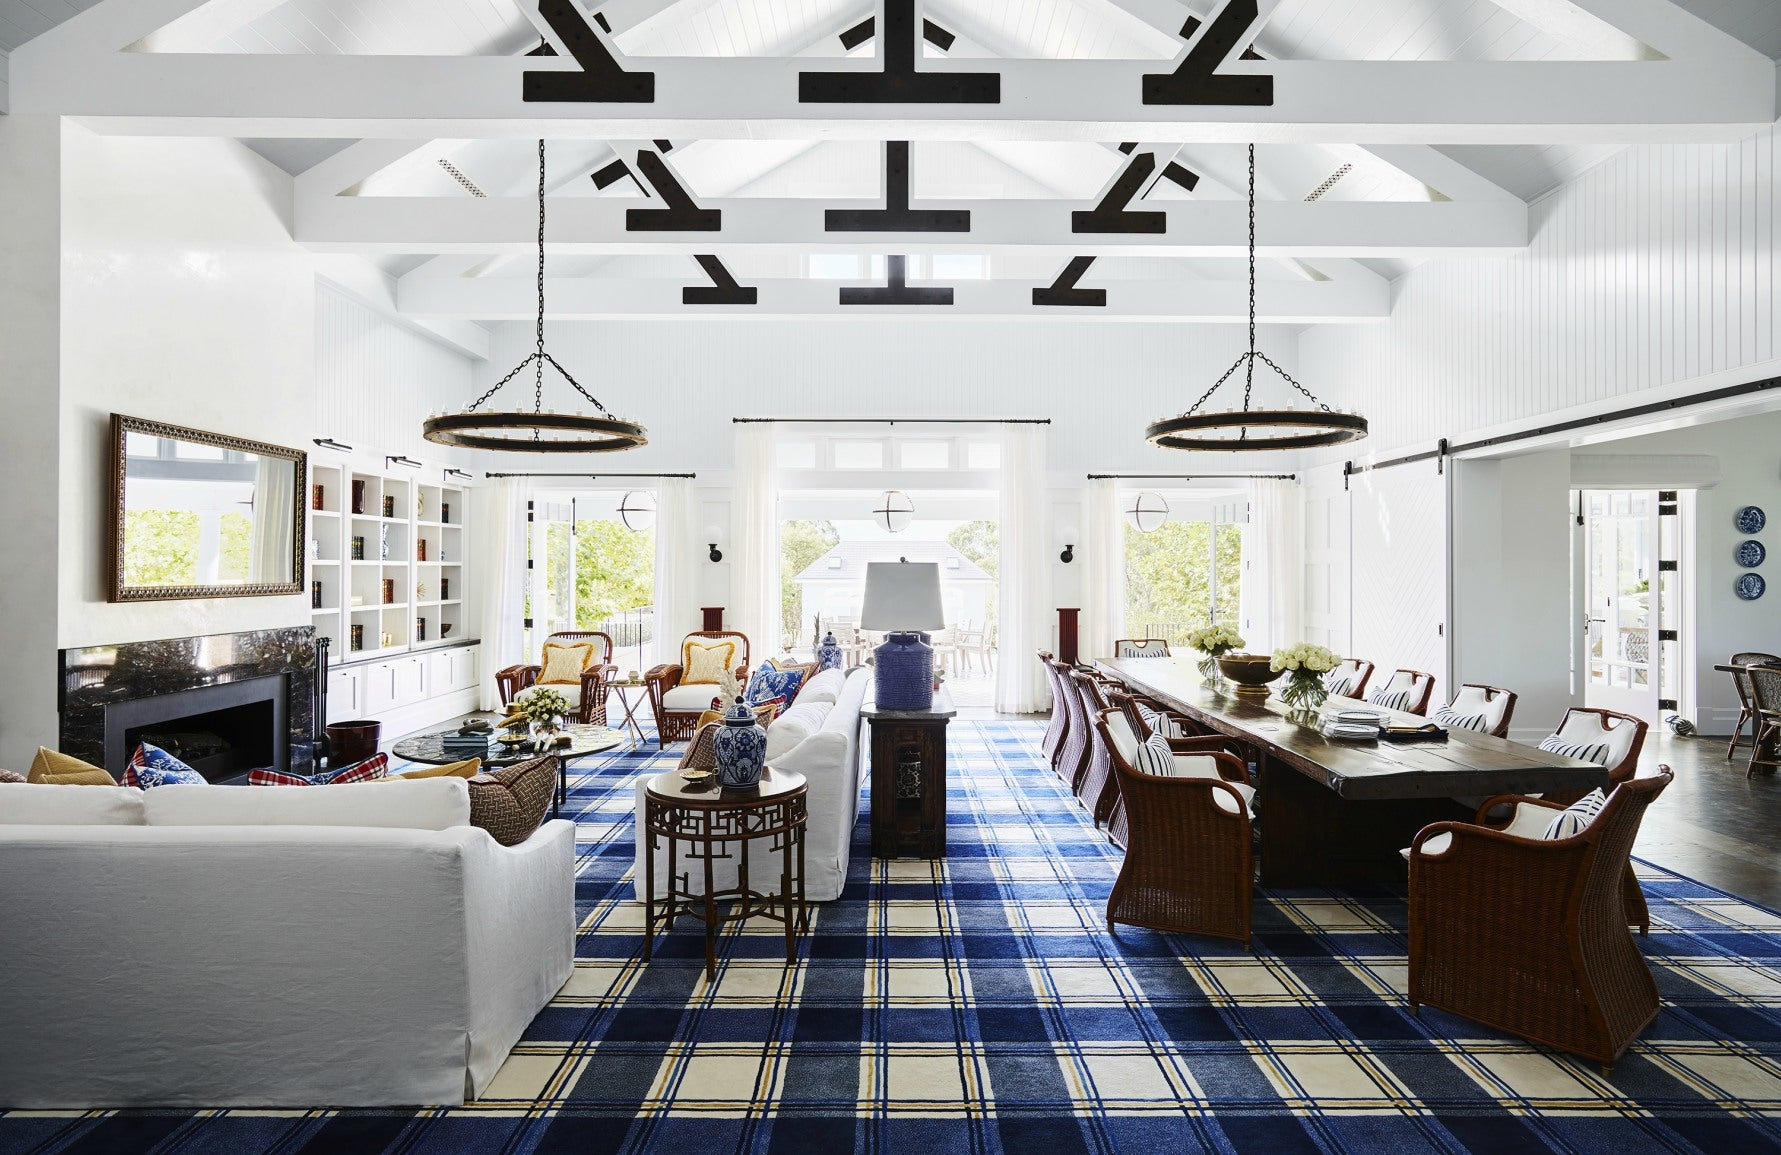 Tartan Living Room Ideas | White and Blue Living Room | Interior design by Greg Natale | LuxDeco.com